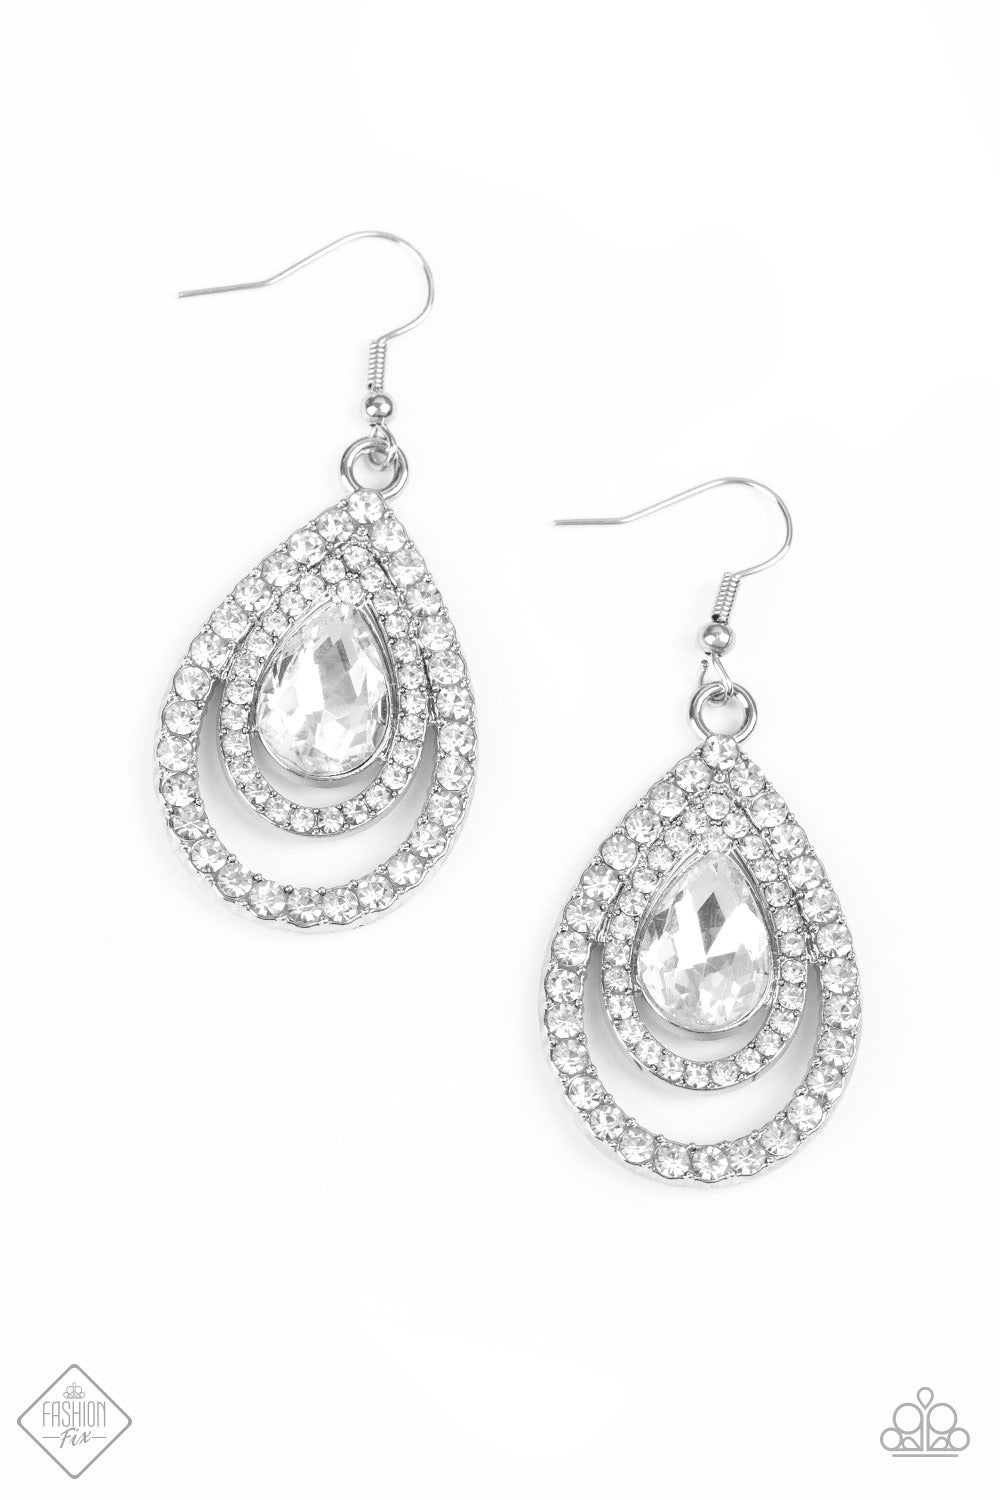 So The Story GLOWS - White Rhinestone Earrings - Paparazzi Accessories